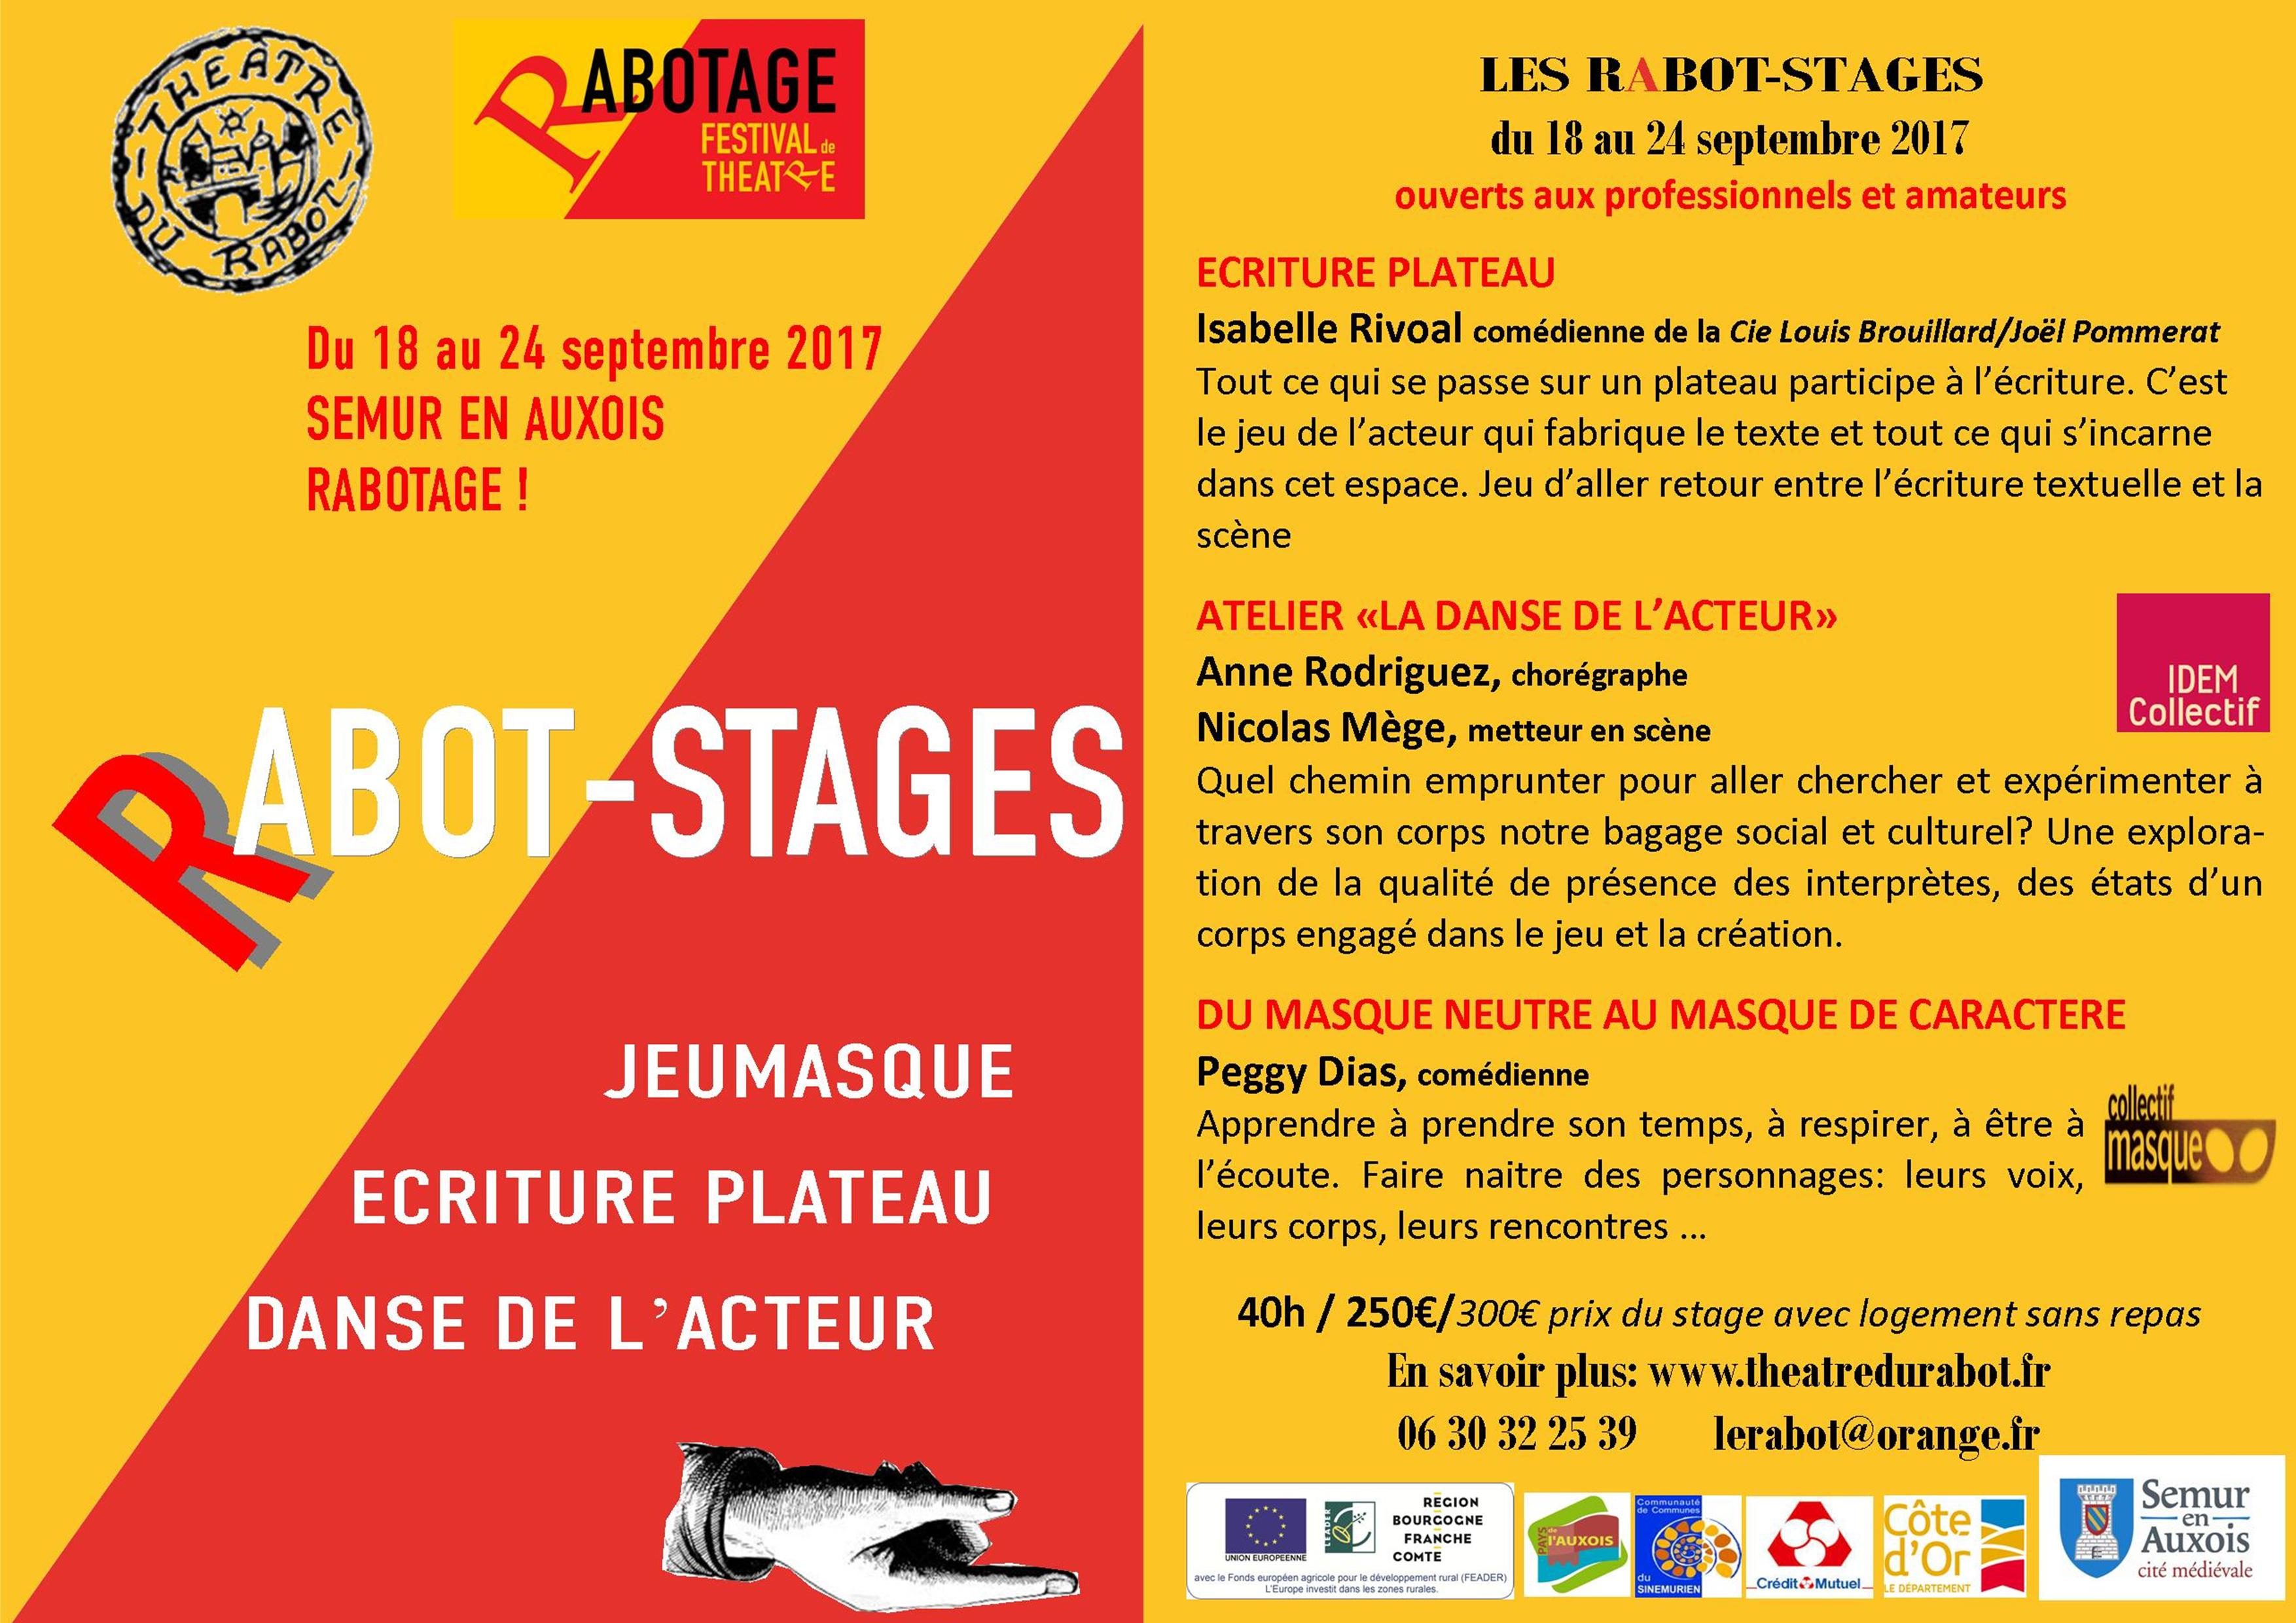 Rabot-Stages